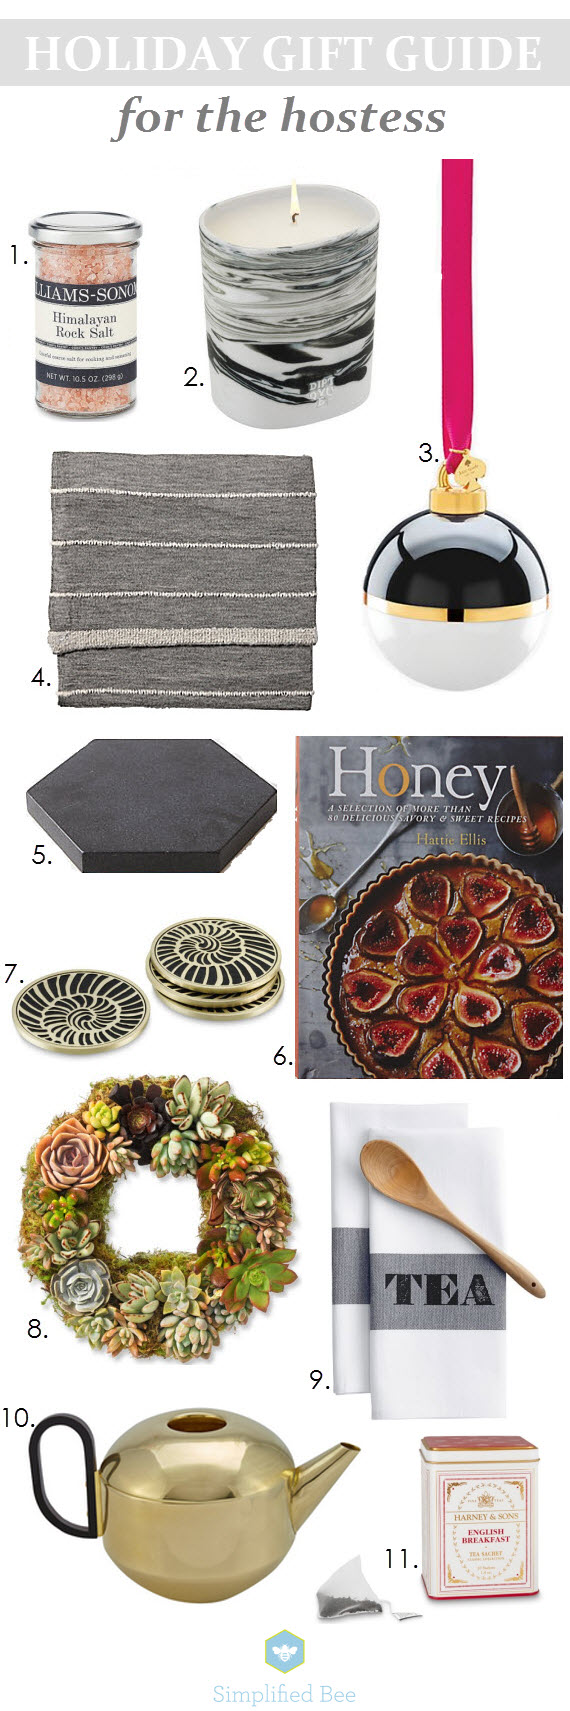 holiday gift guide 2014 // hostess gift ideas // simplified bee #holiday #gifts